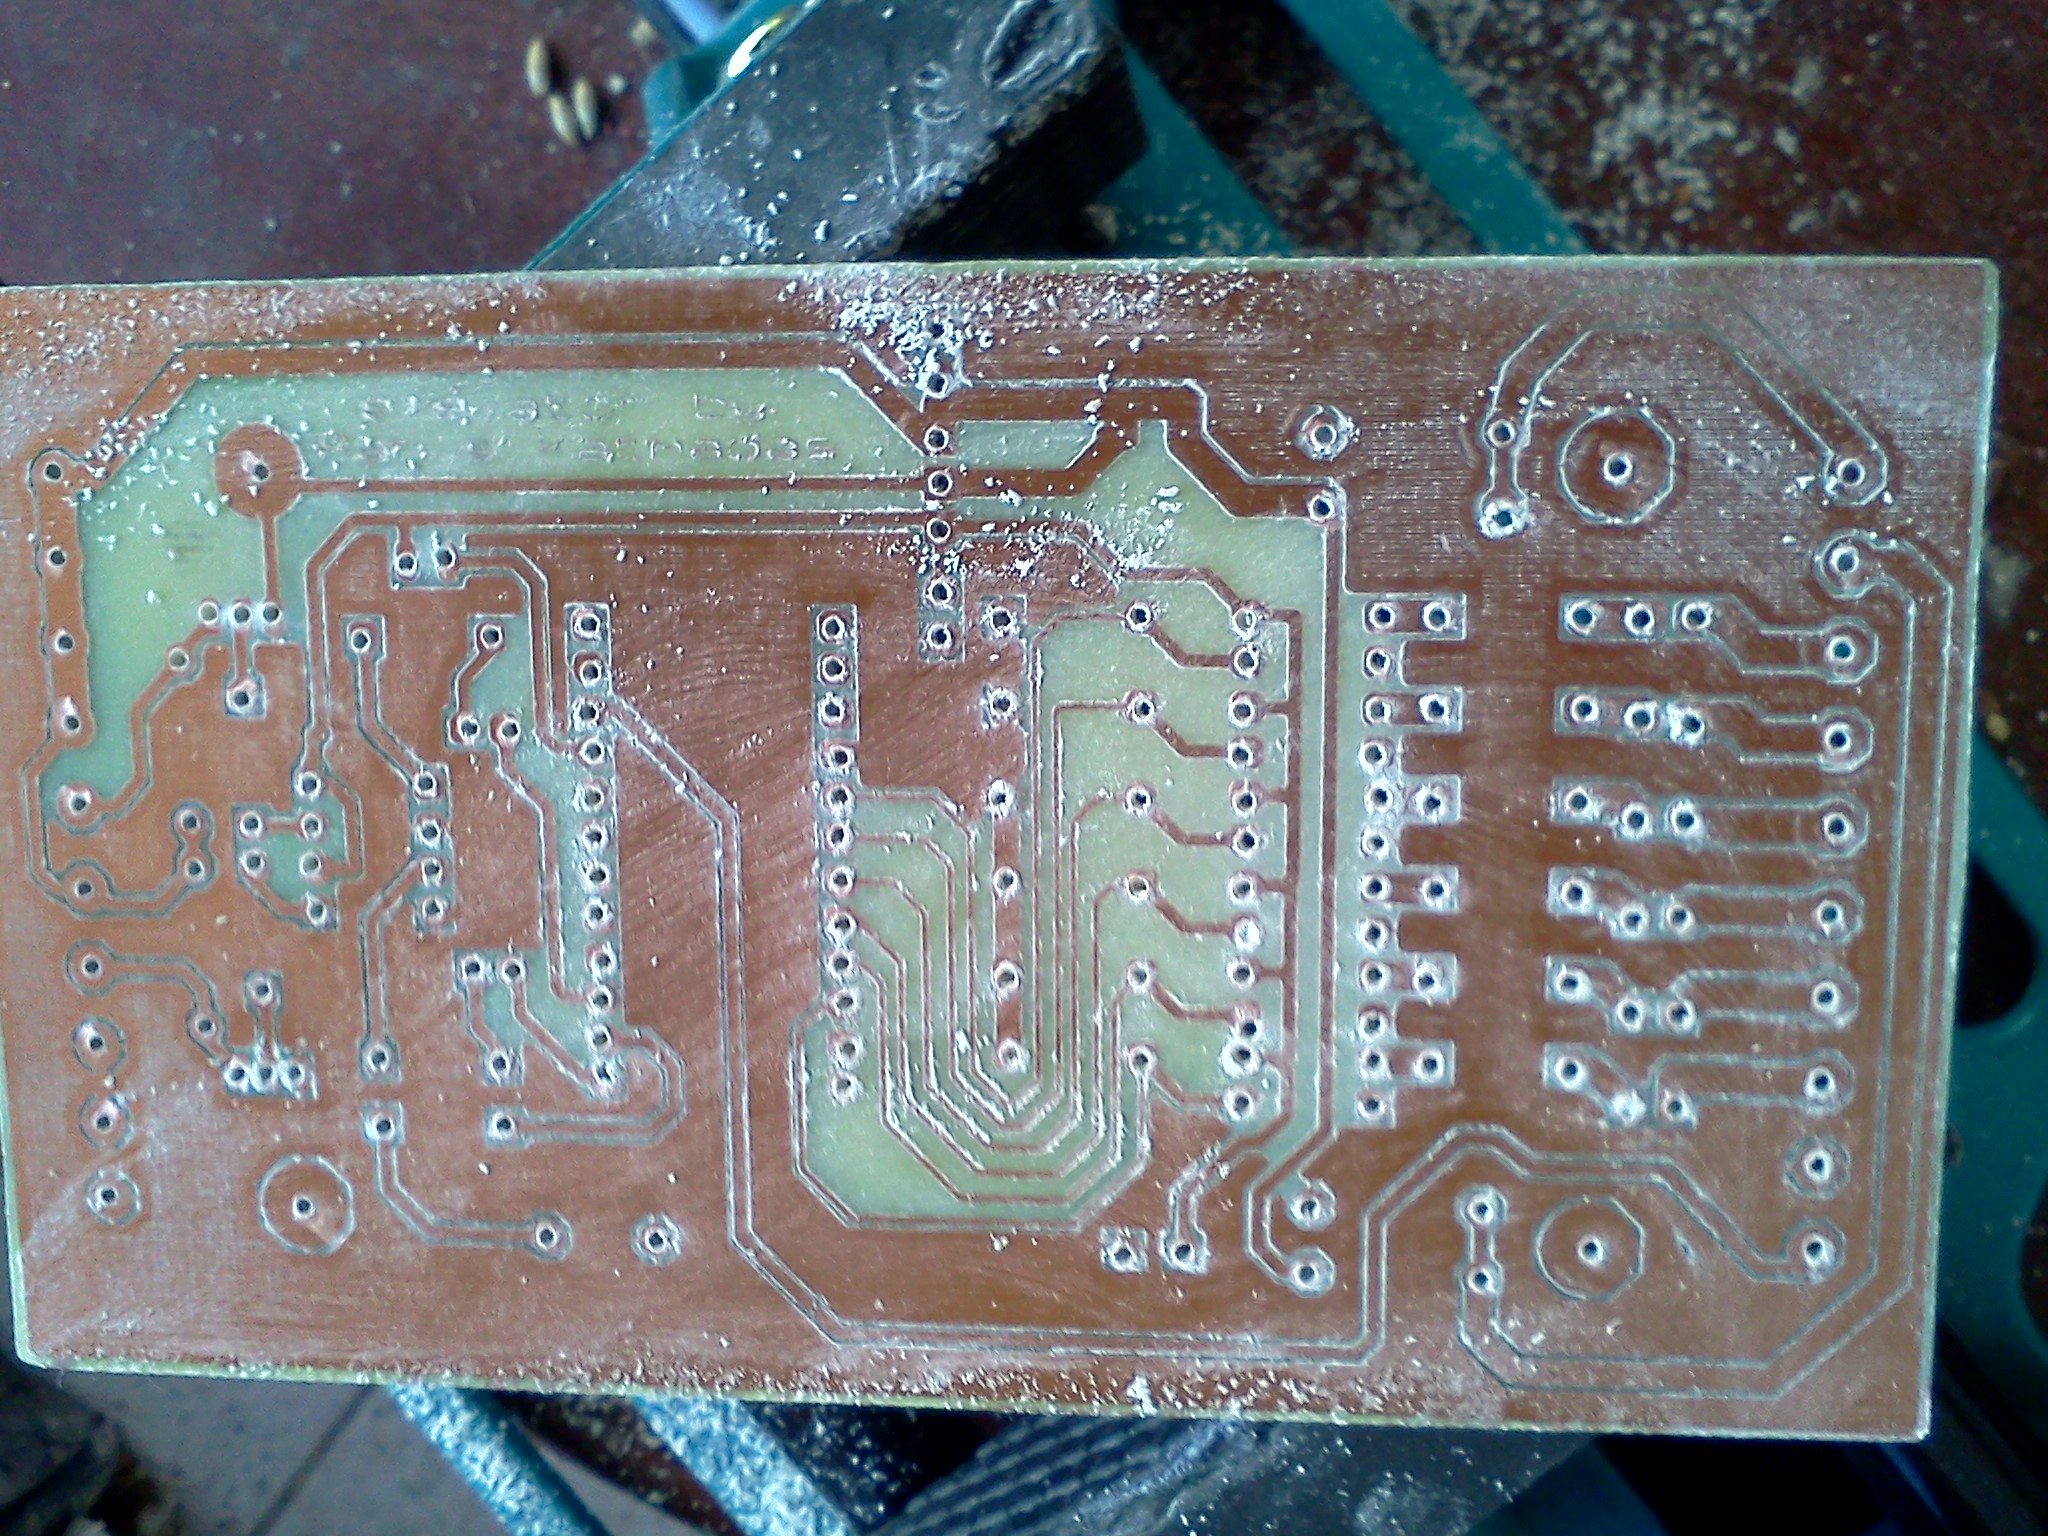 Picture of The Arduino Main Board